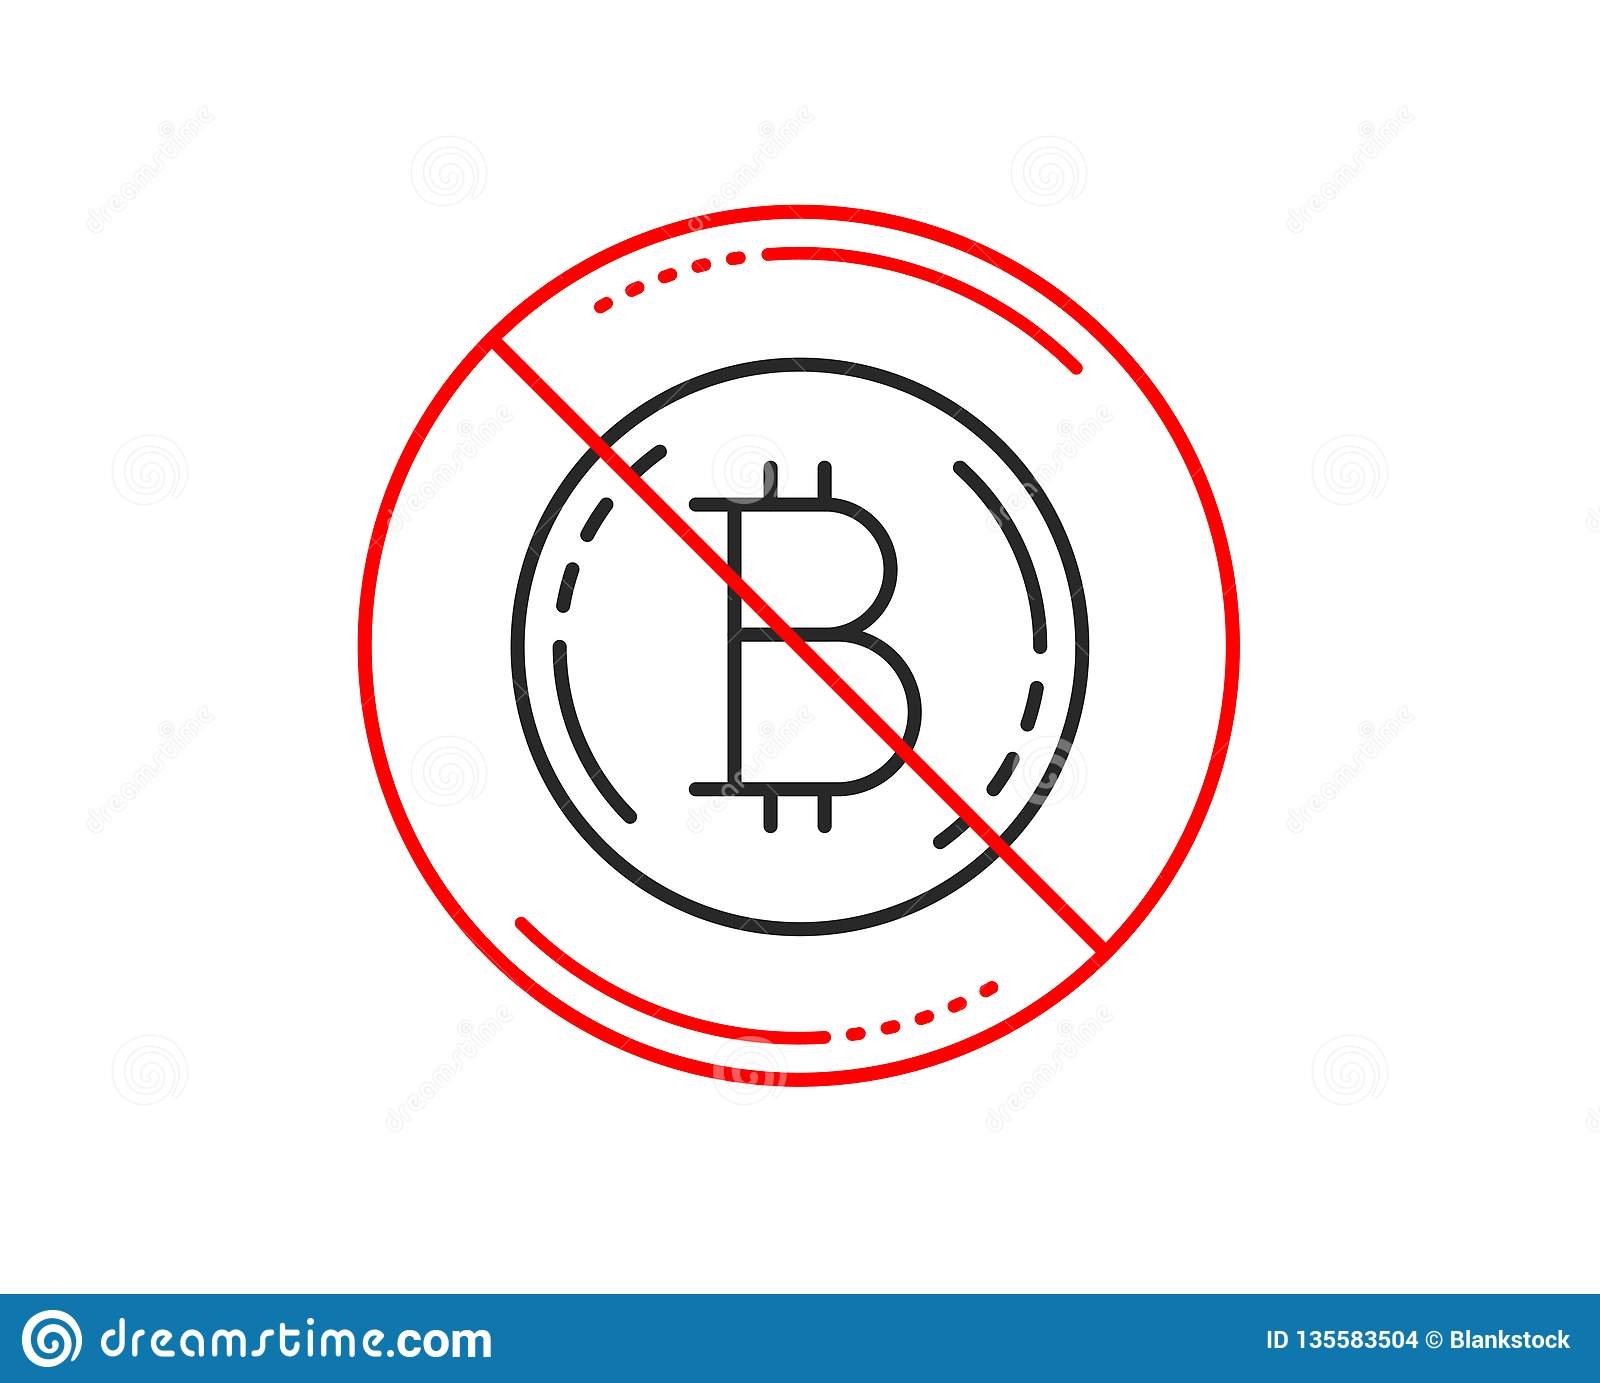 pro coin cryptocurrency stock